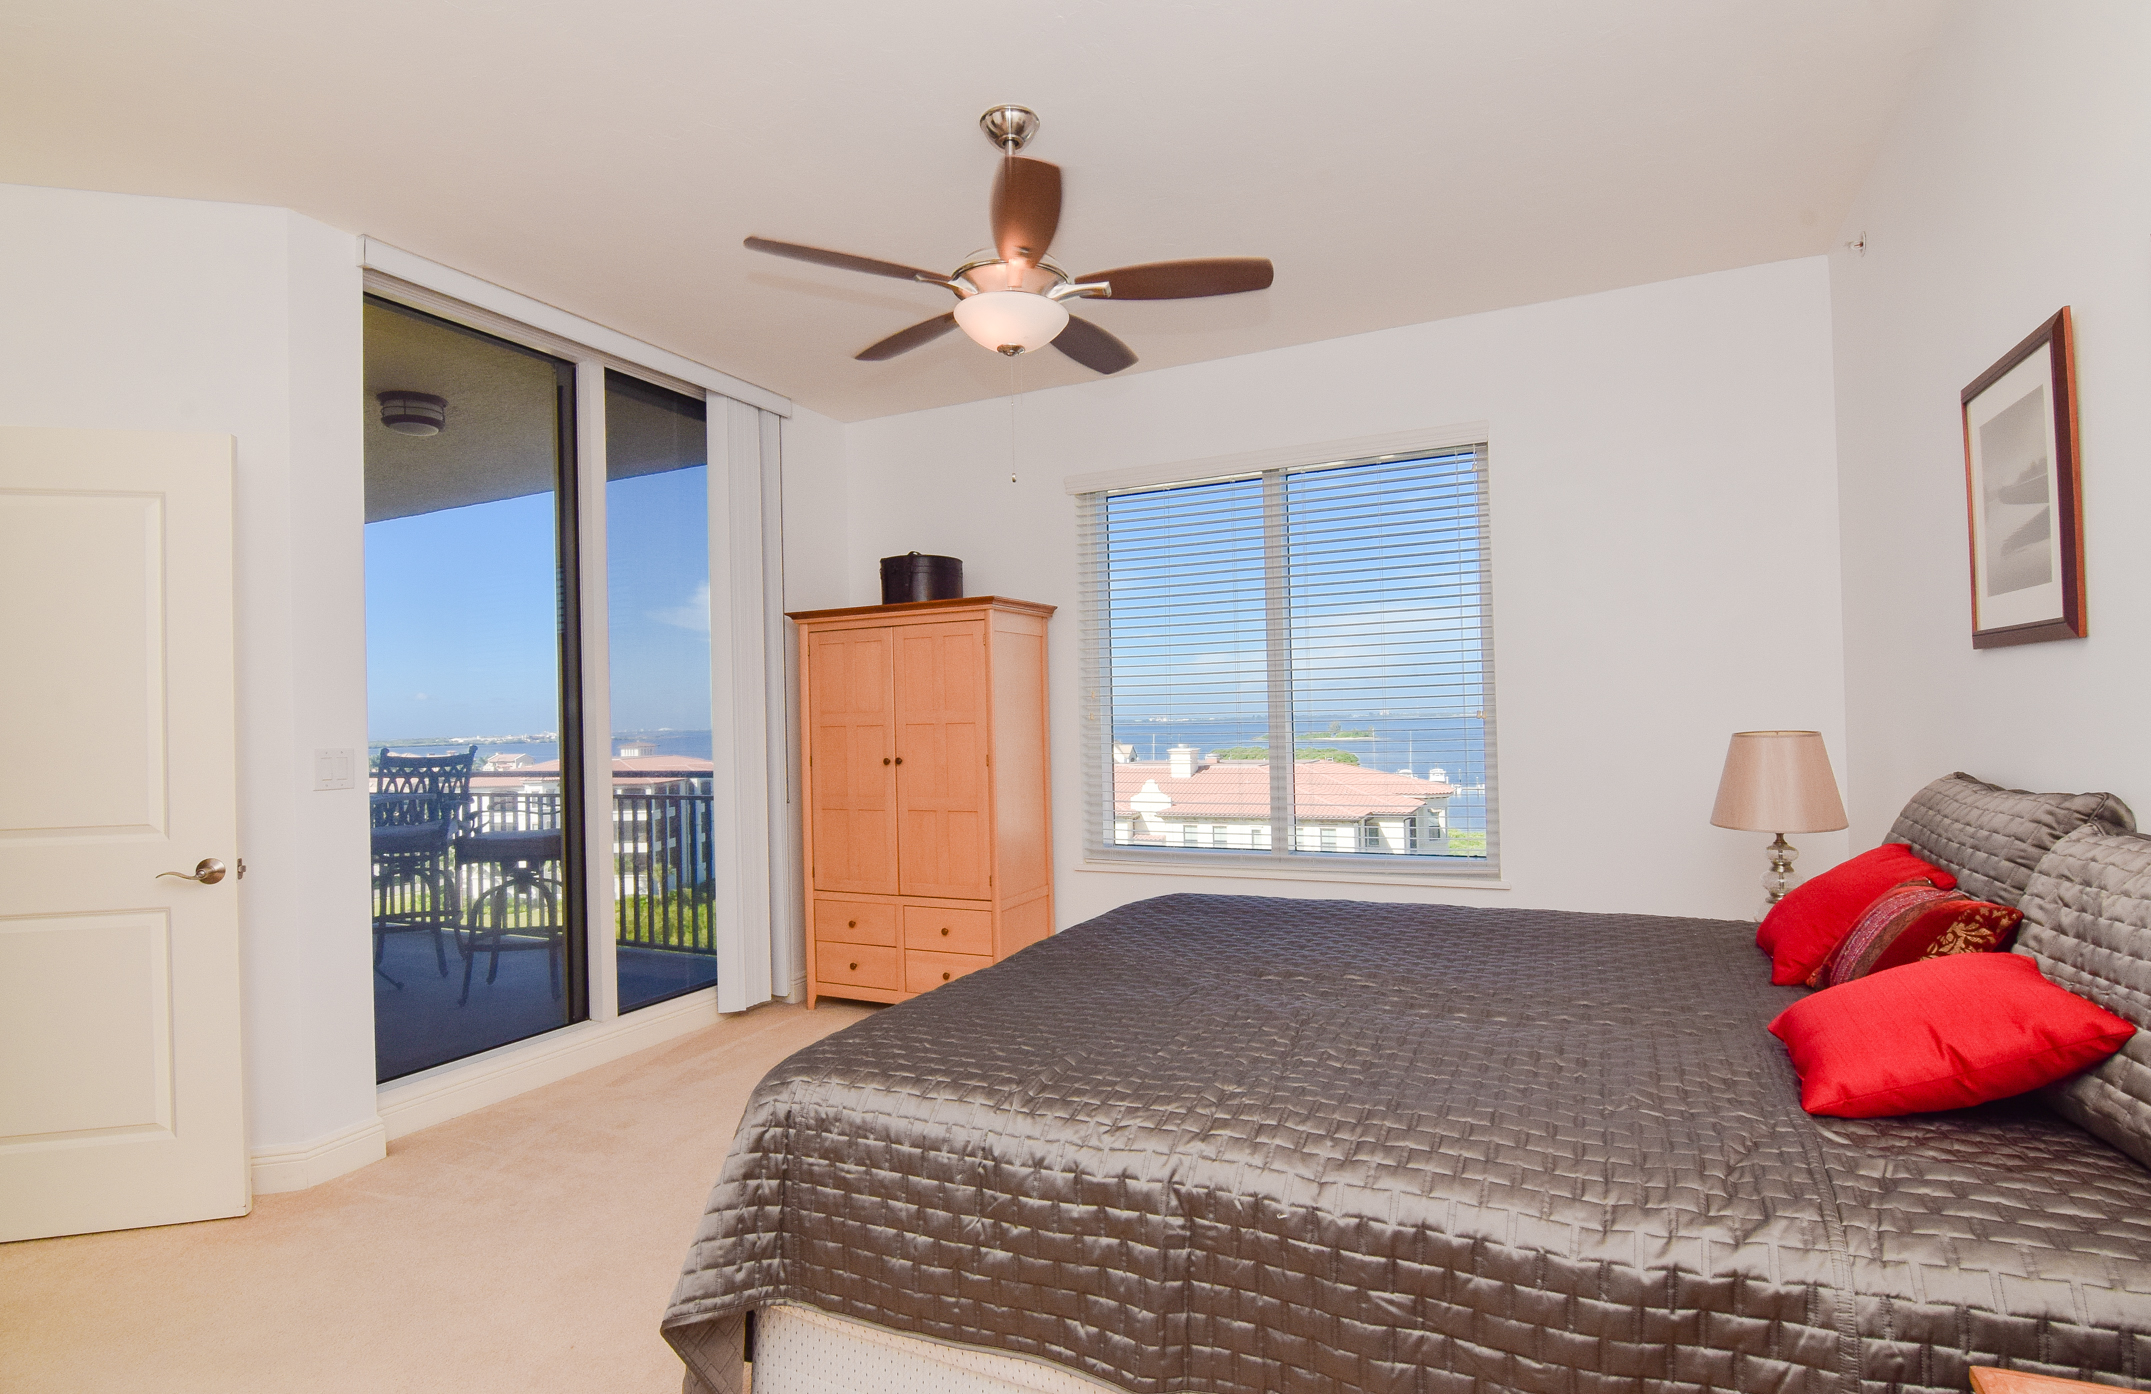 Water View Master Bedroom with Balcony Access